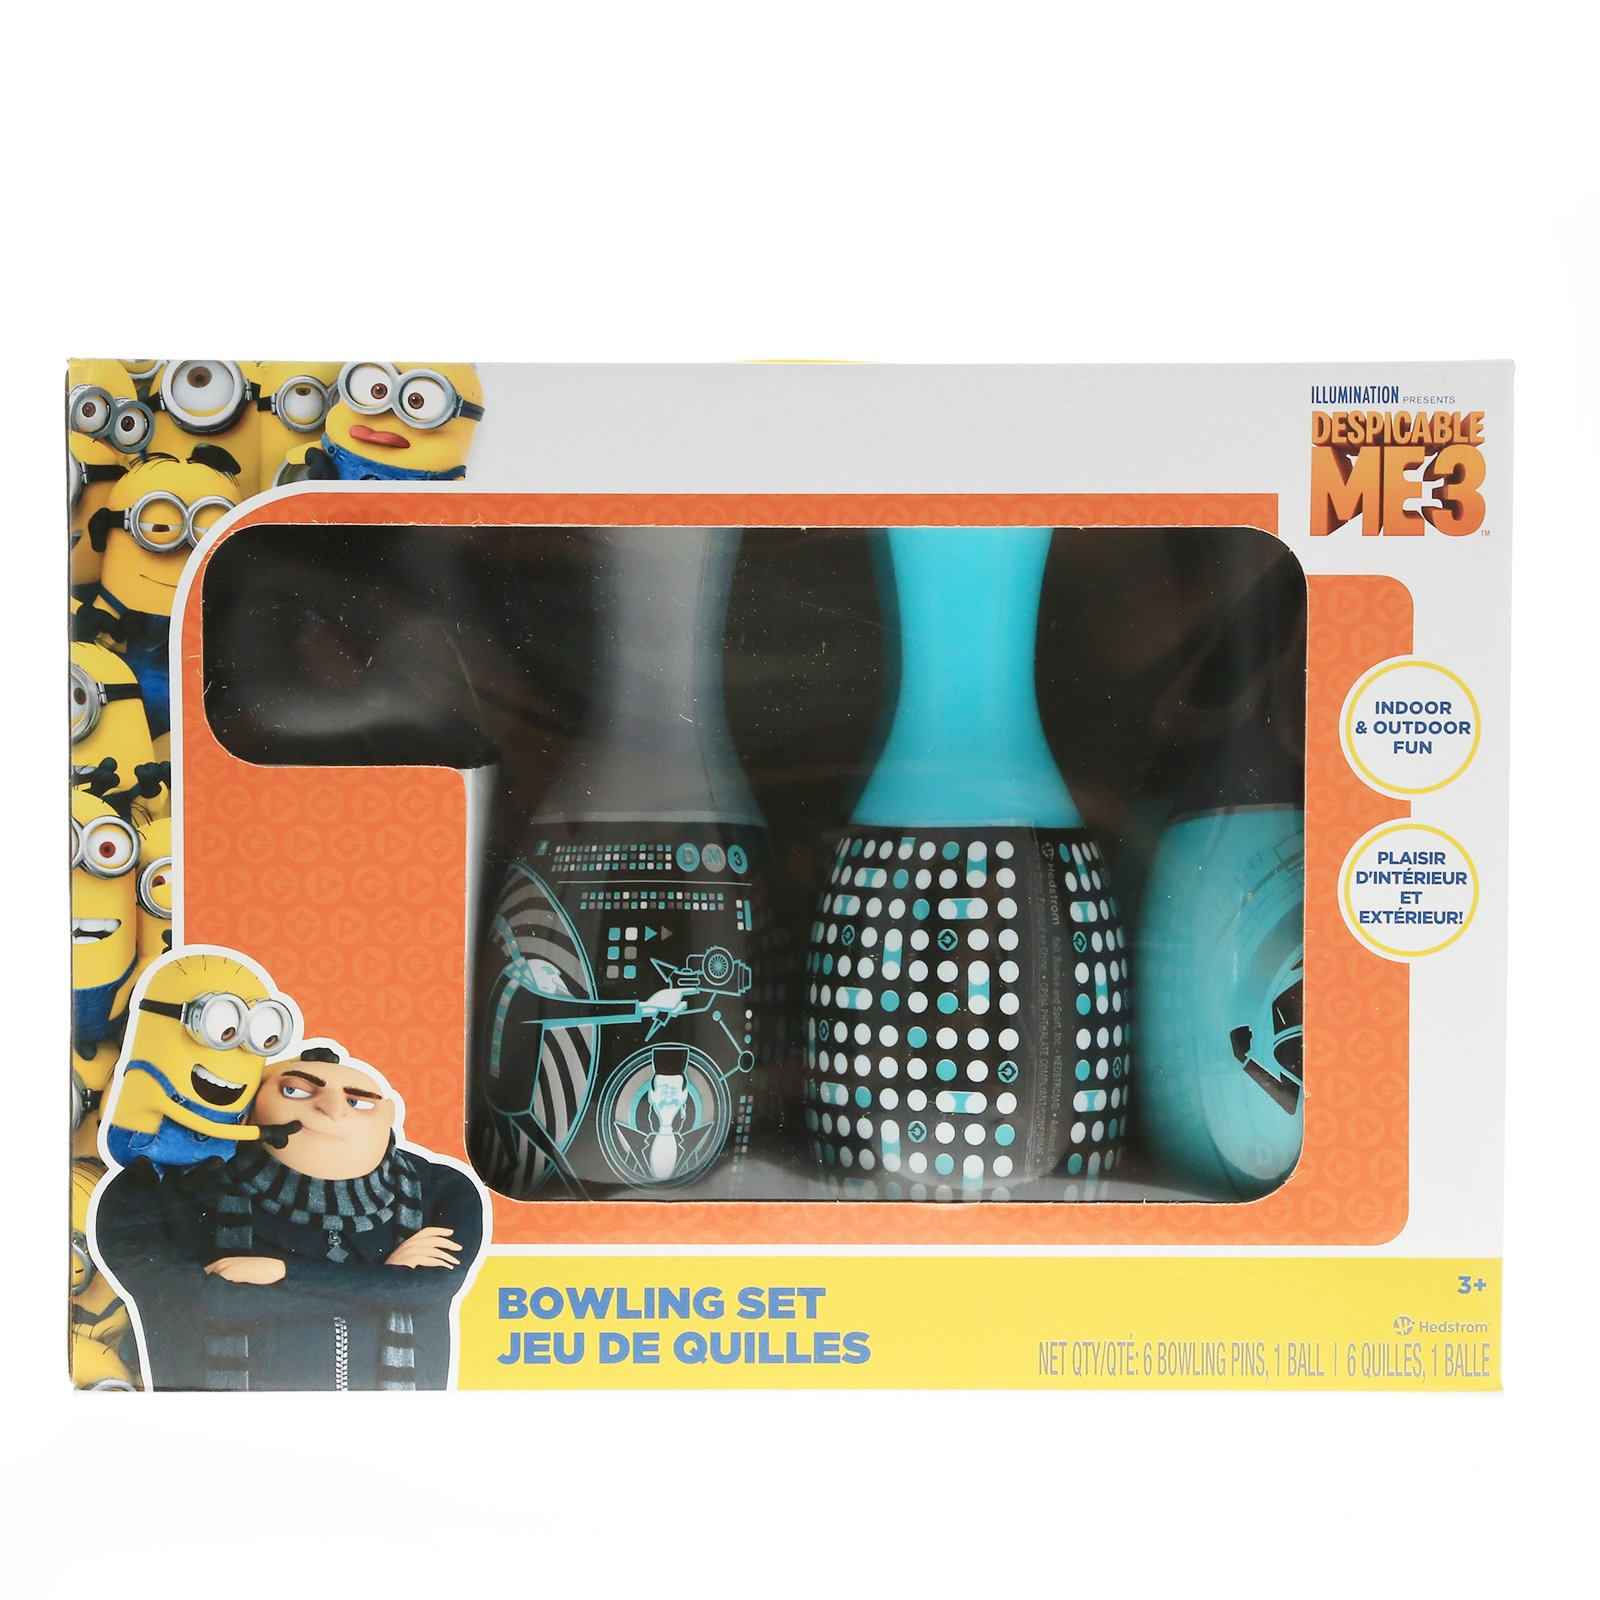 Despicable Me Bowling Set Indoor and Outdoor Sports Toys